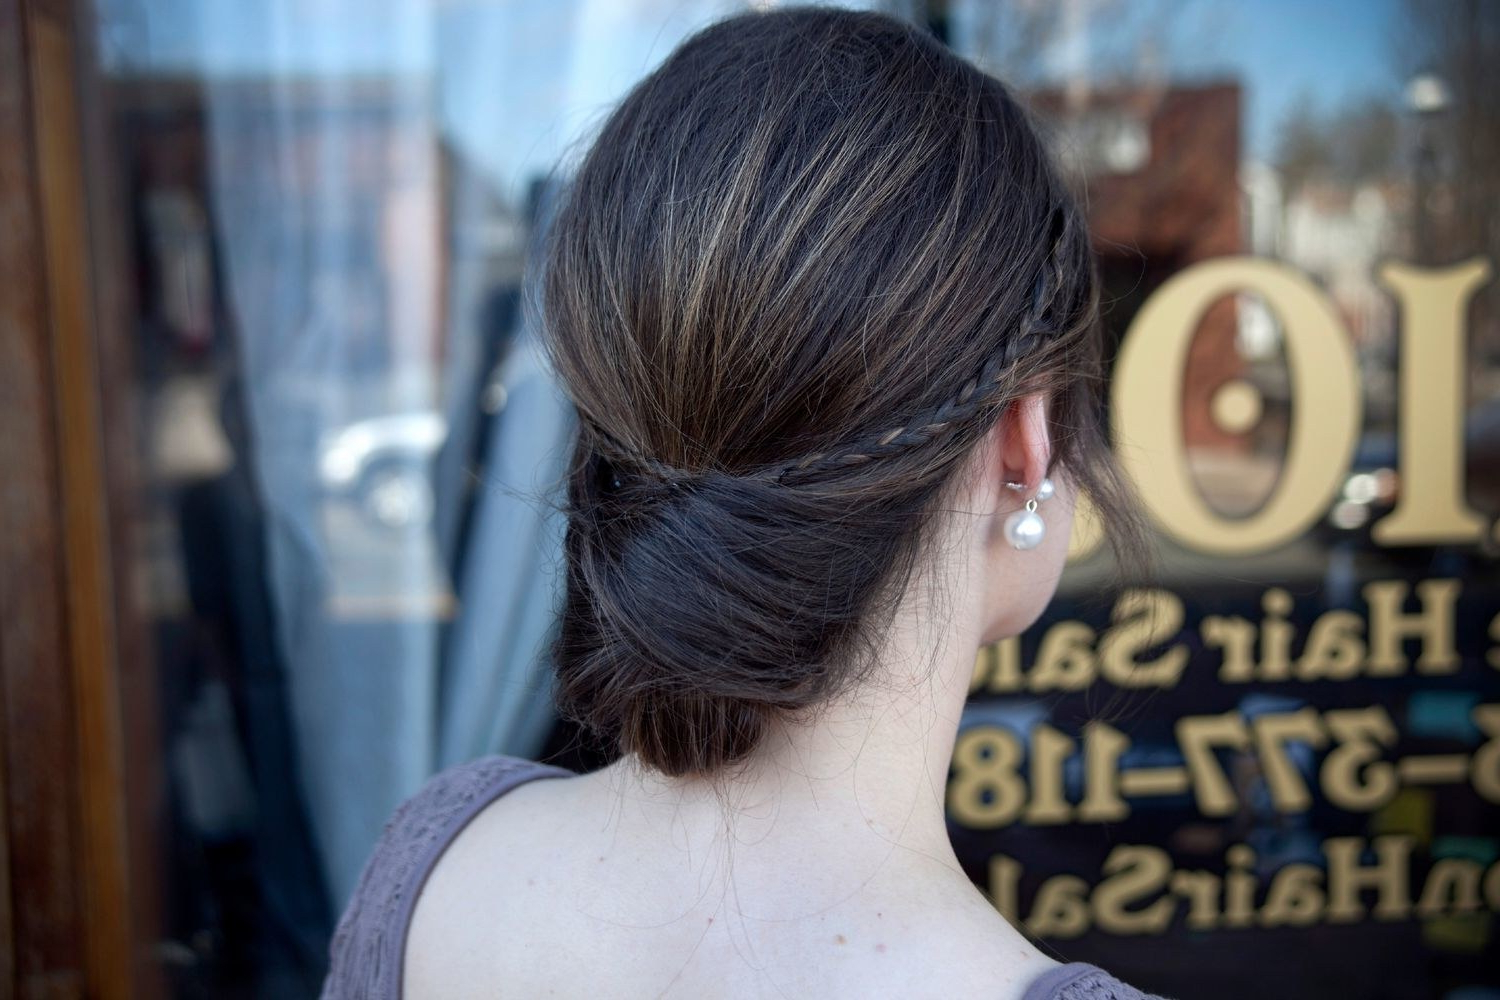 Wedding Hairstyles Diy: Low Bun With Accent Braid How To – Glamour Pertaining To Recent Criss Cross Wedding Hairstyles (View 11 of 20)